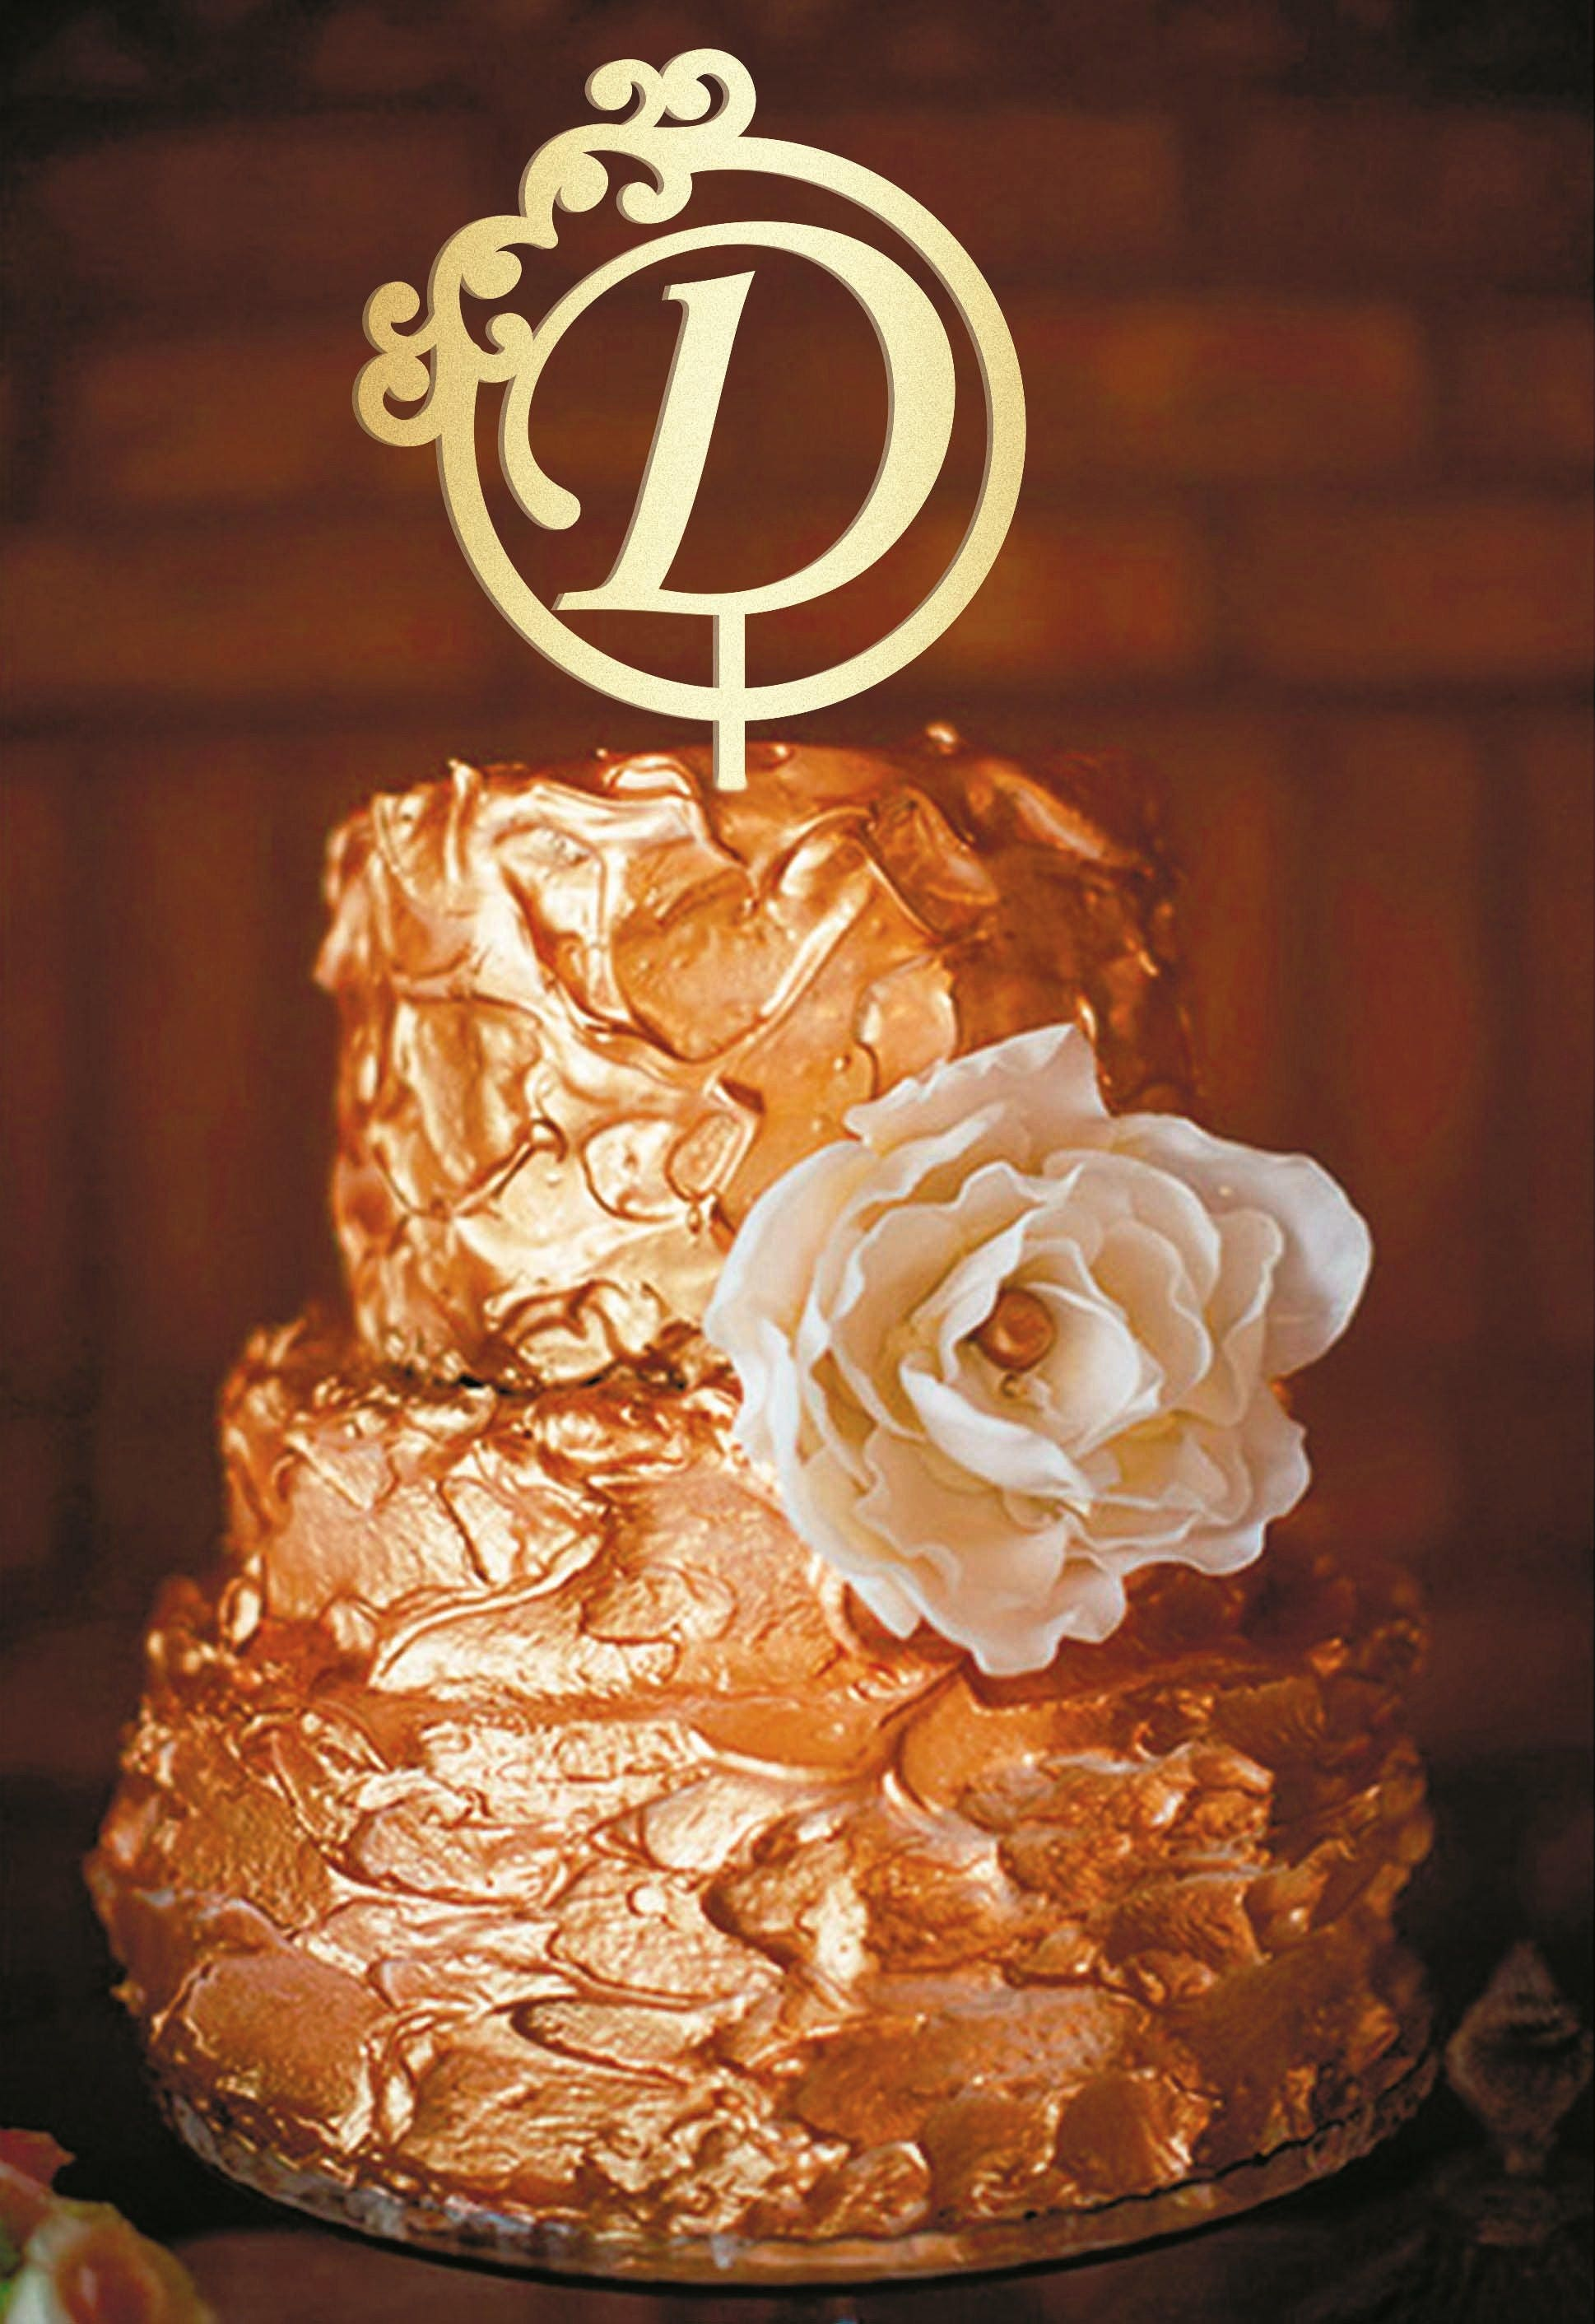 d letter wedding cake topper gold monogram wedding cake topper d